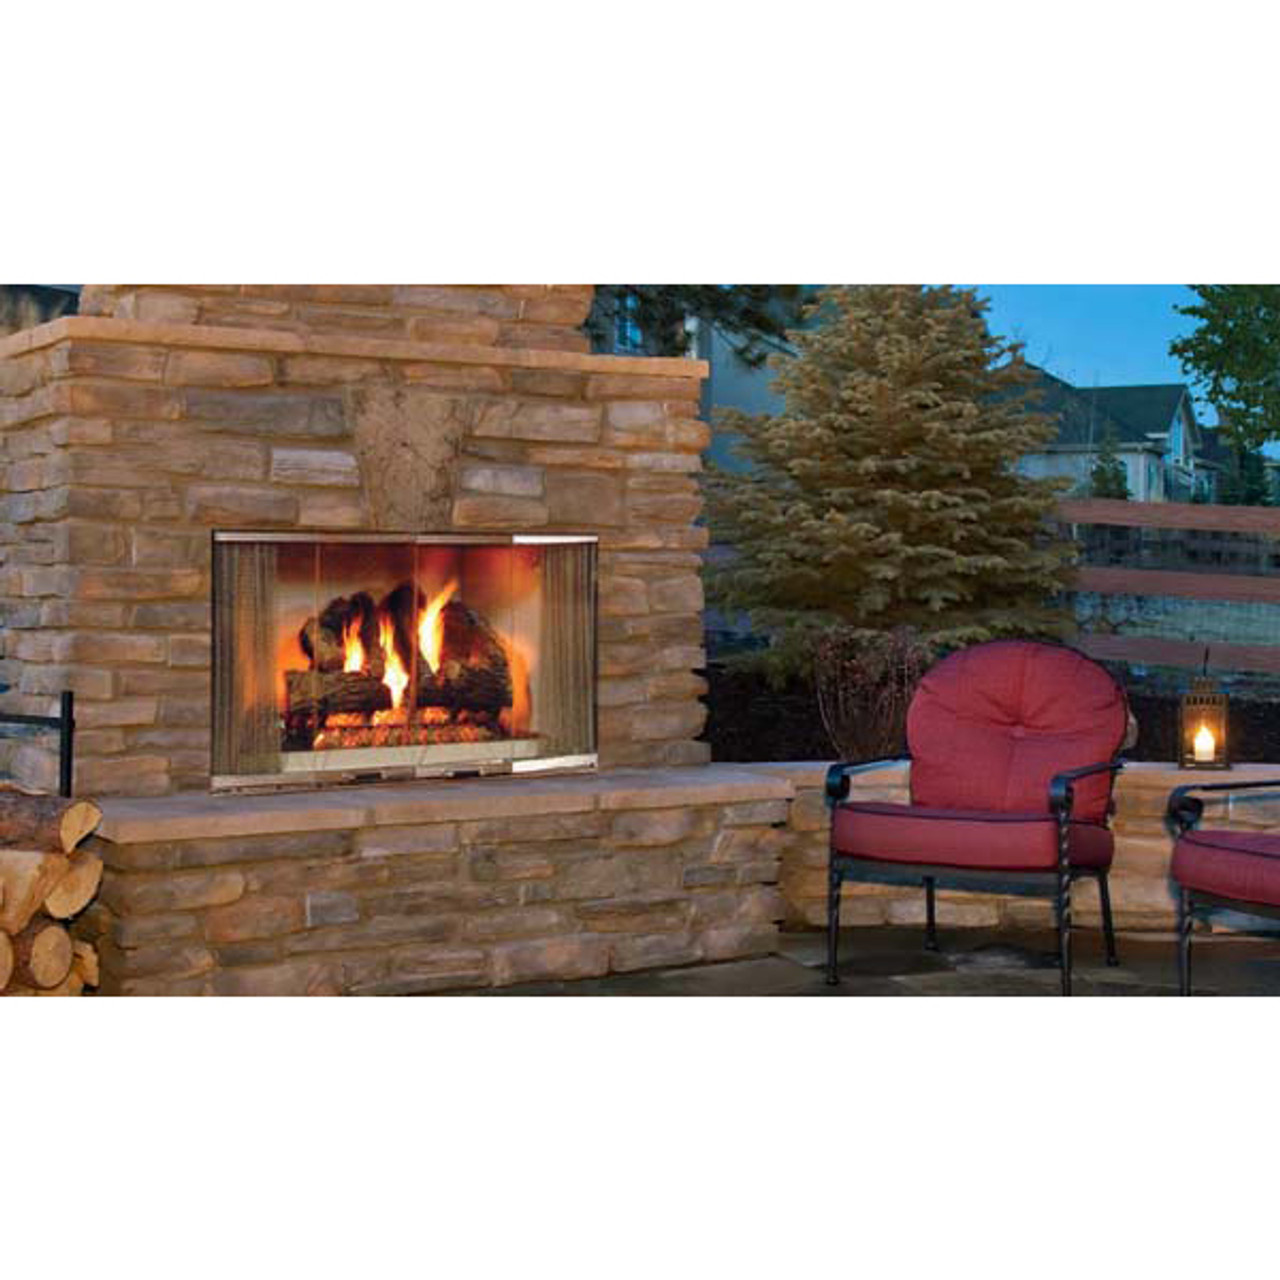 Montana radiant outdoor wood burning fireplace 42 inch majestic montana radiant outdoor wood burning fireplace 42 inch teraionfo